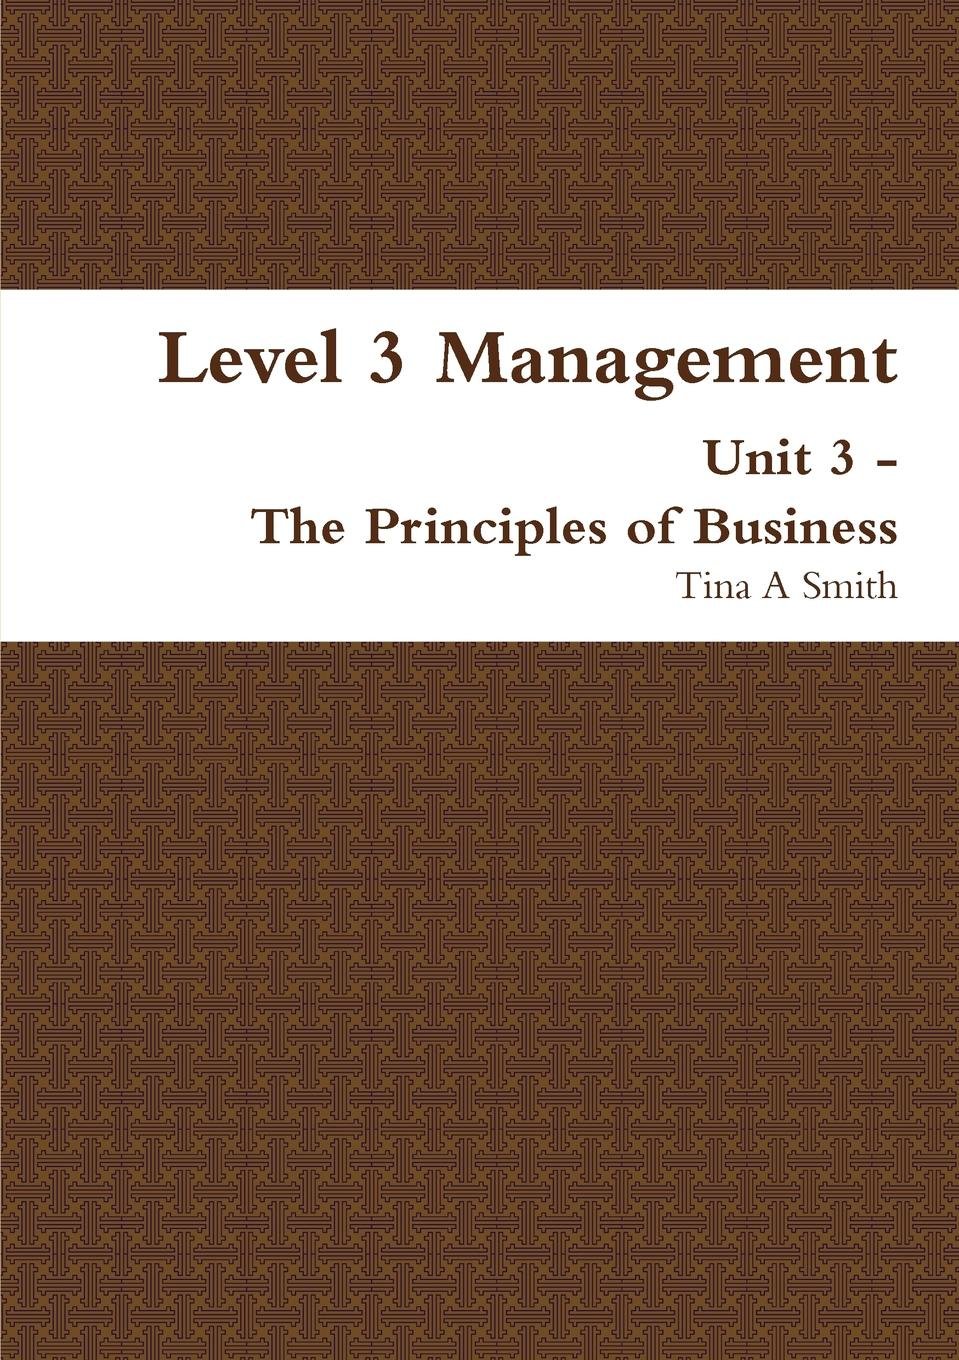 Tina A Smith Level 3 Management Unit 3 - The Principles of Business